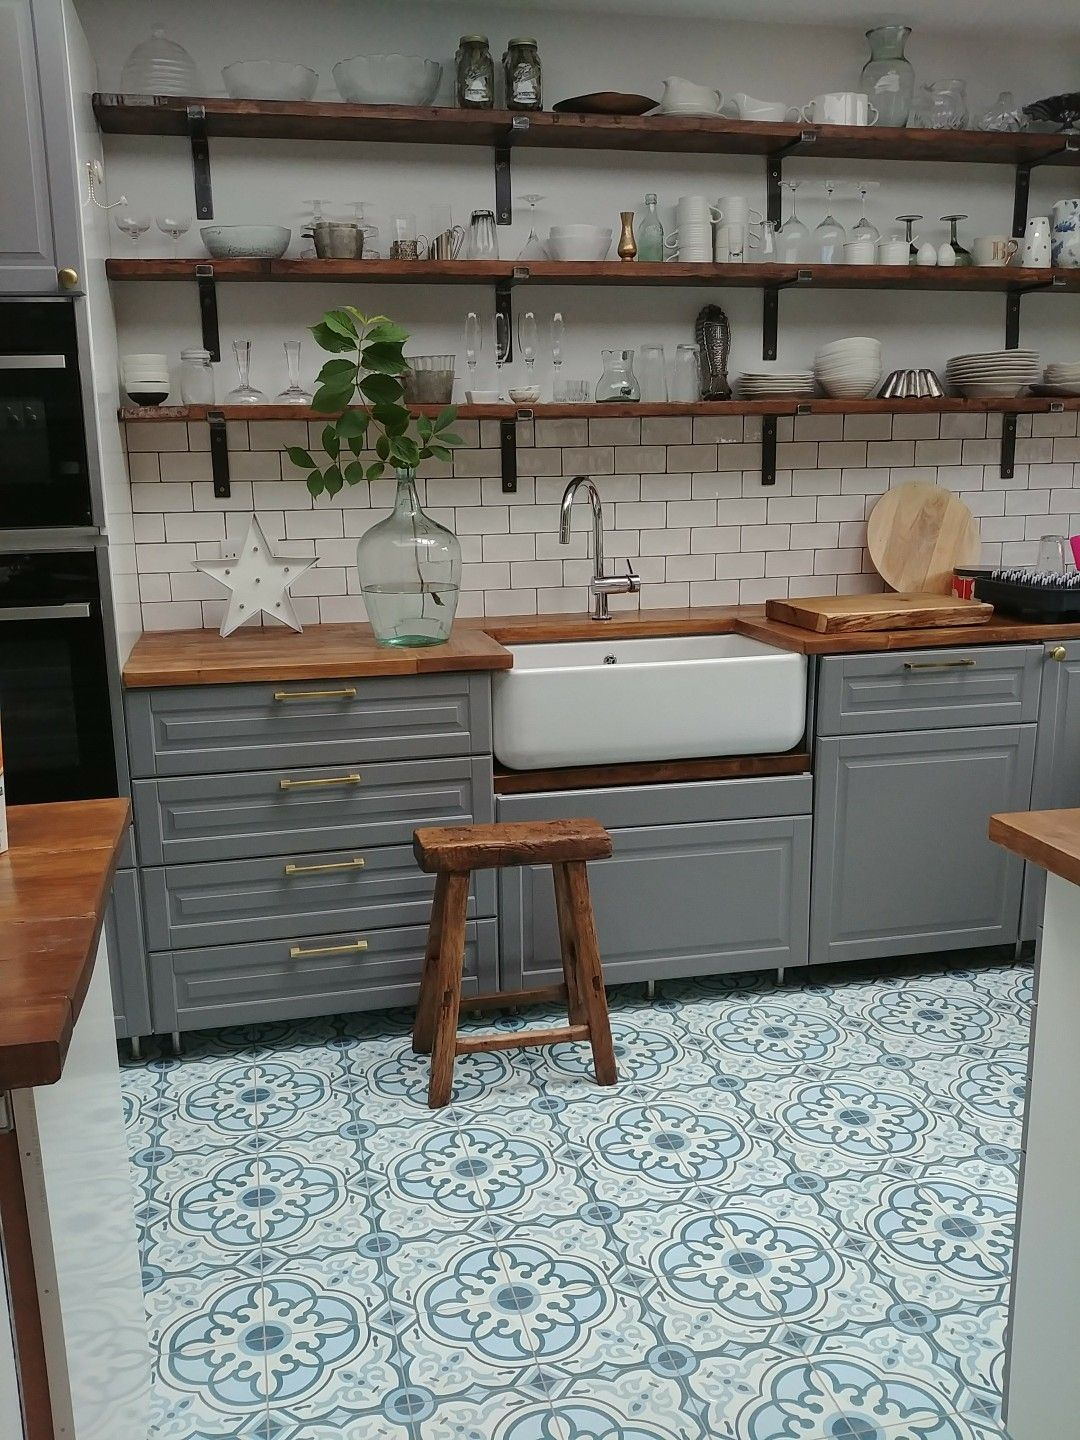 Ikea Neue Küchenfronten 2019 Ikea Bodbyn Kitchen Grey With White Metro Tiles Butler